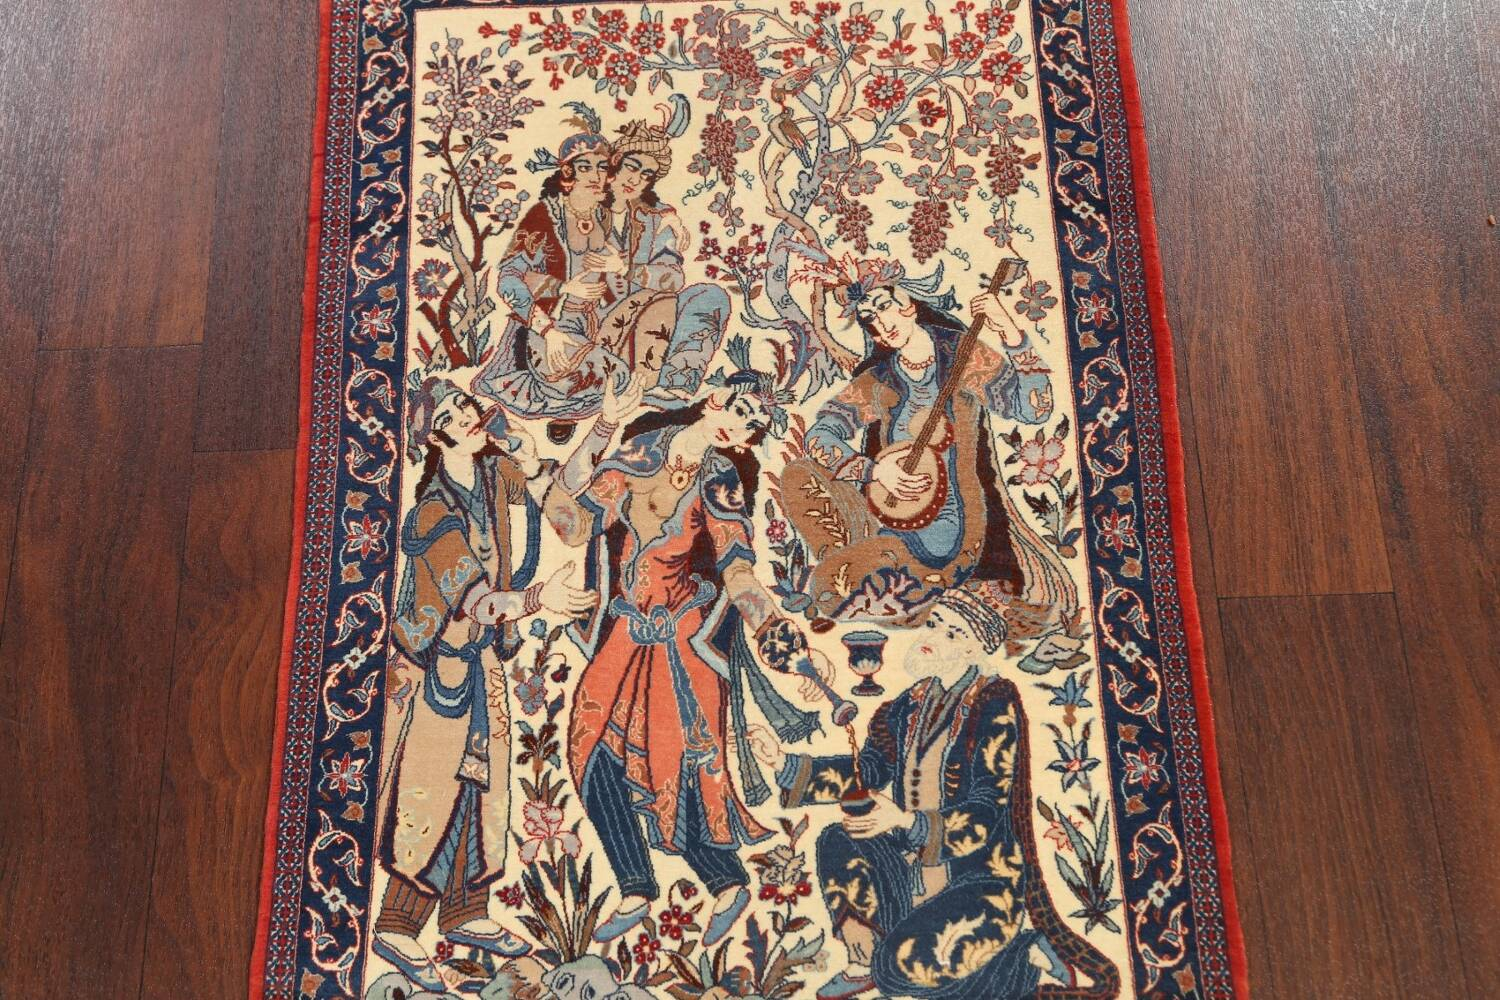 Antique Vegetable Dye Tableau Isfahan Persian Area Rug 2x3 image 3